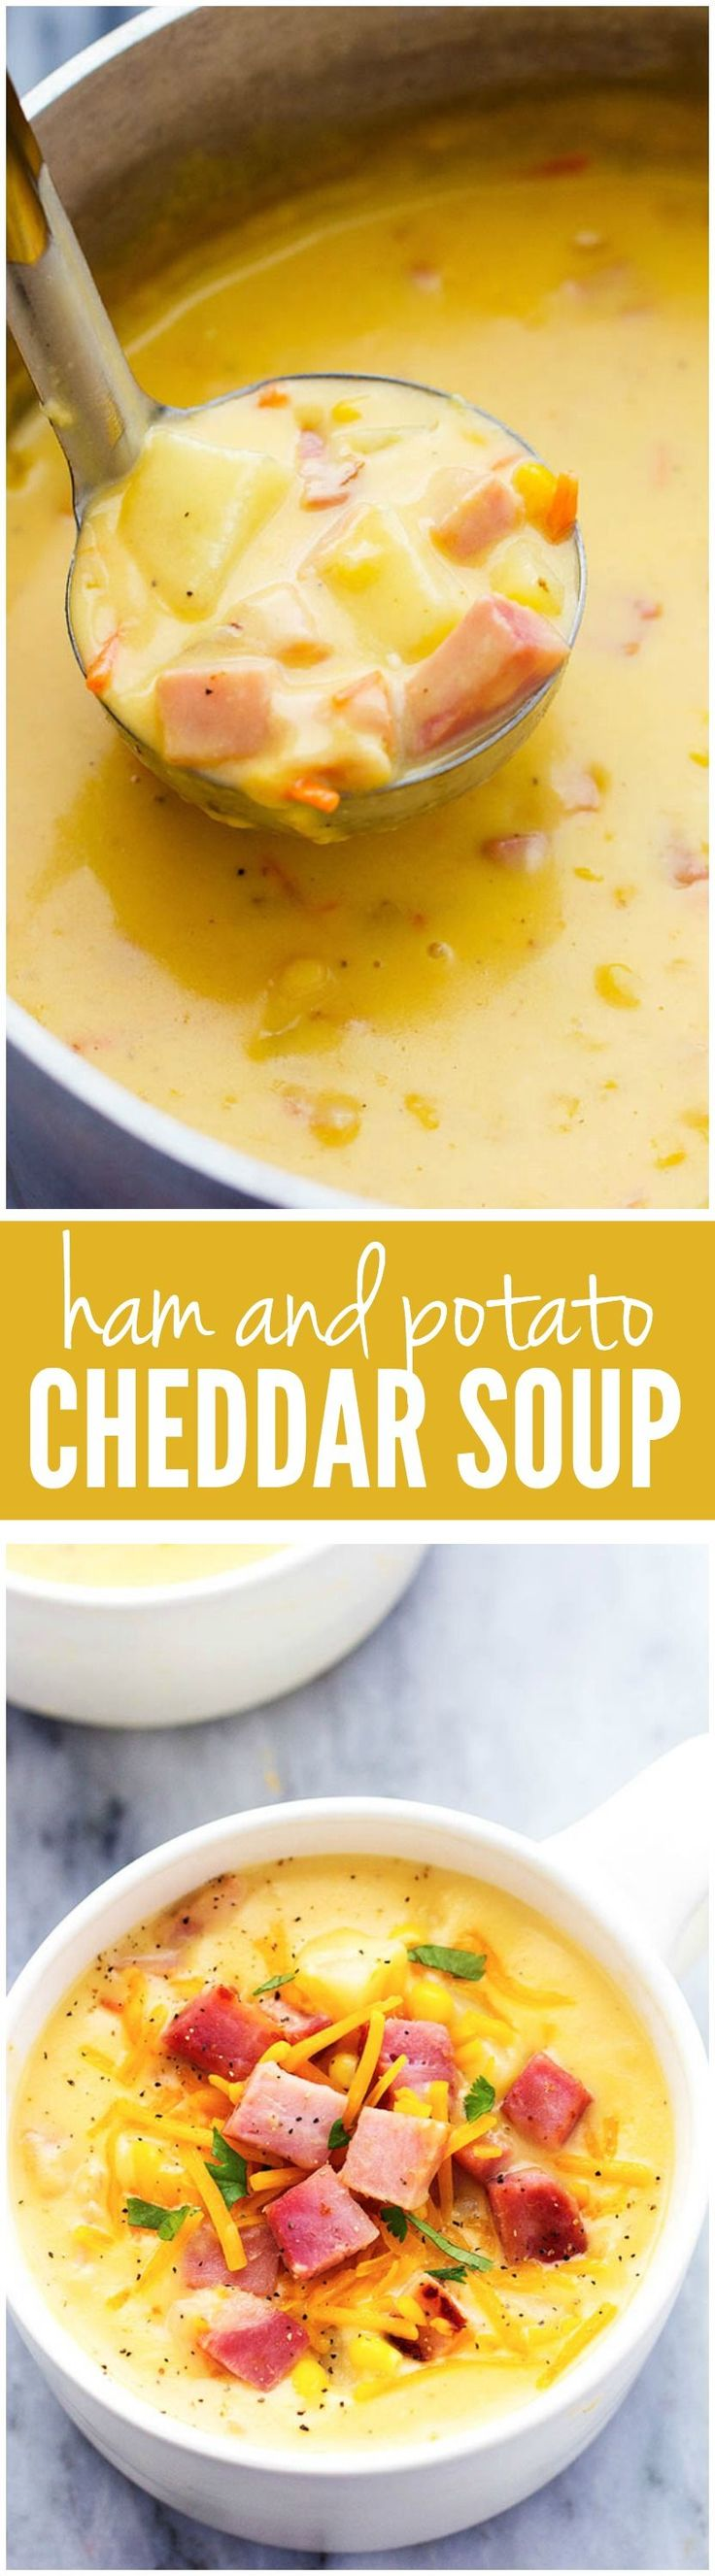 Ham and Potato Cheddar Soup.....This hearty and delicious soup is full of ham, potatoes, and veggies. The real cheddar cheese inside adds such amazing flavor to this comforting soup! Literally the BEST SOUP I have had!!